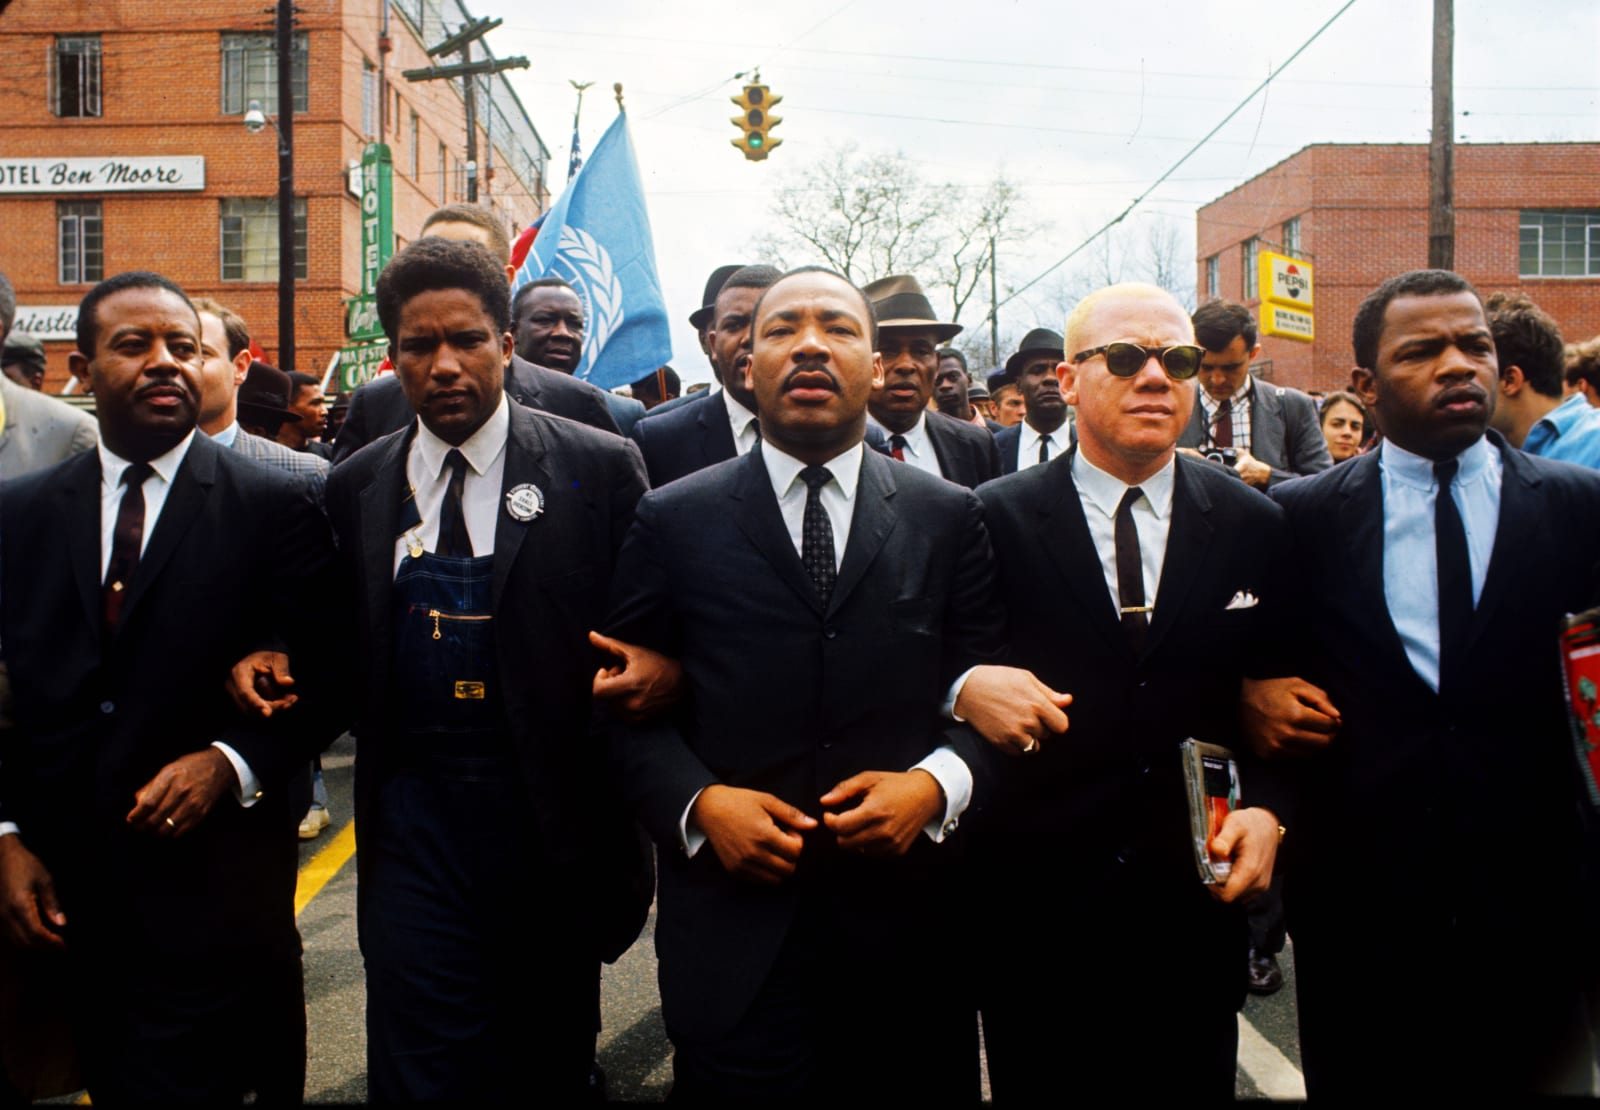 Steve Schapiro Martin Luther King with Group on Street, Montgomery, Alabama, 1965